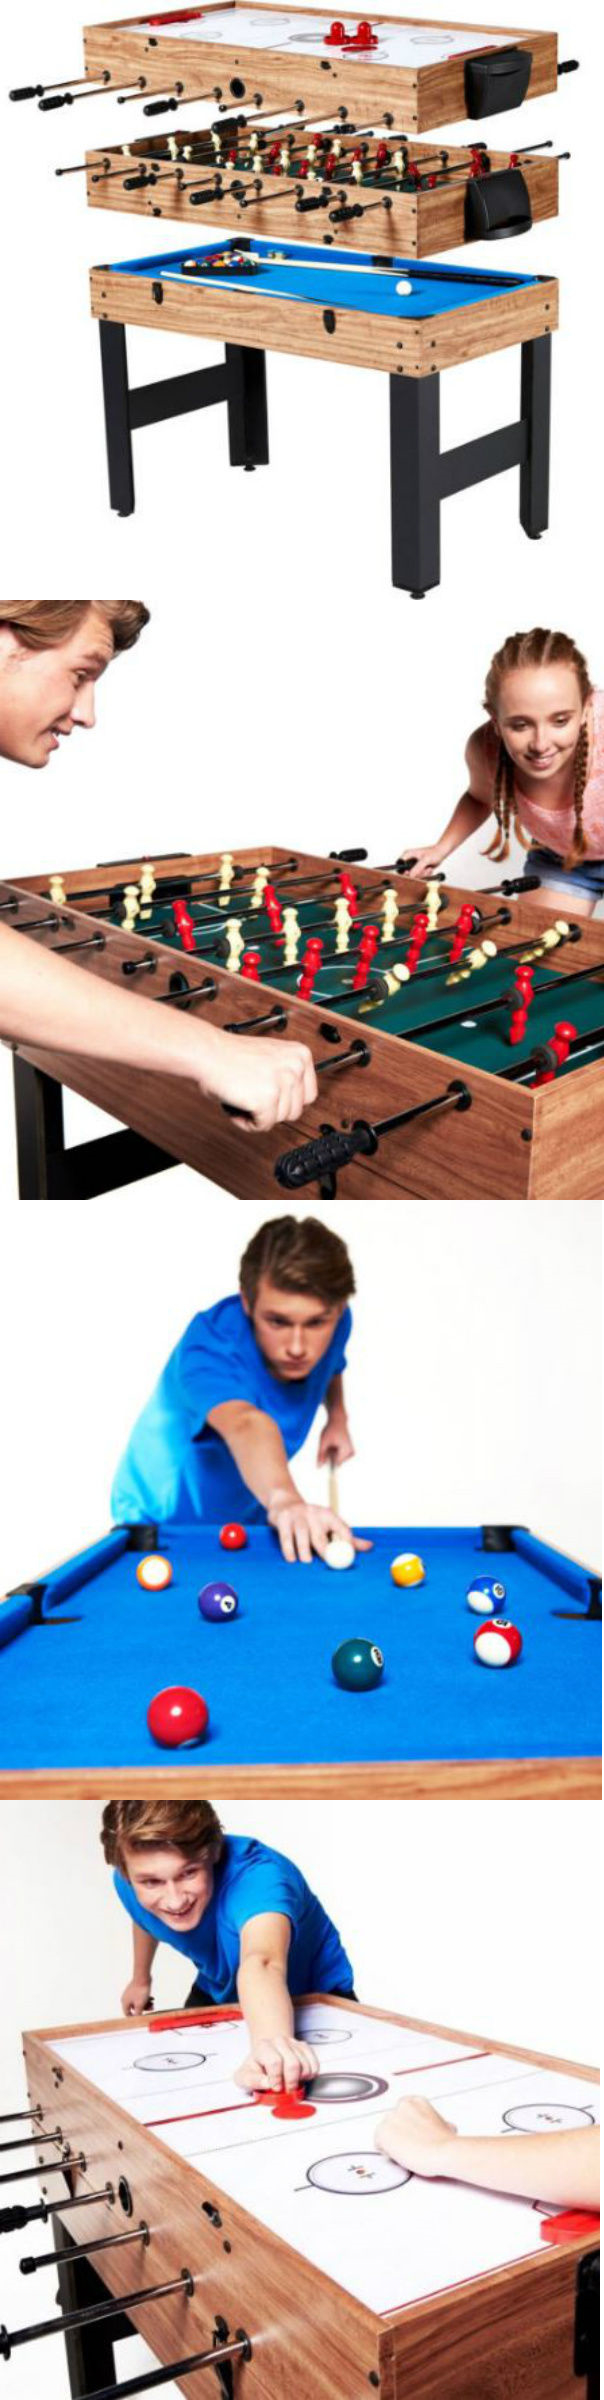 Other Indoor Games 36278: Multi Game Table For Kids Foosball Air Hockey  Pool 3